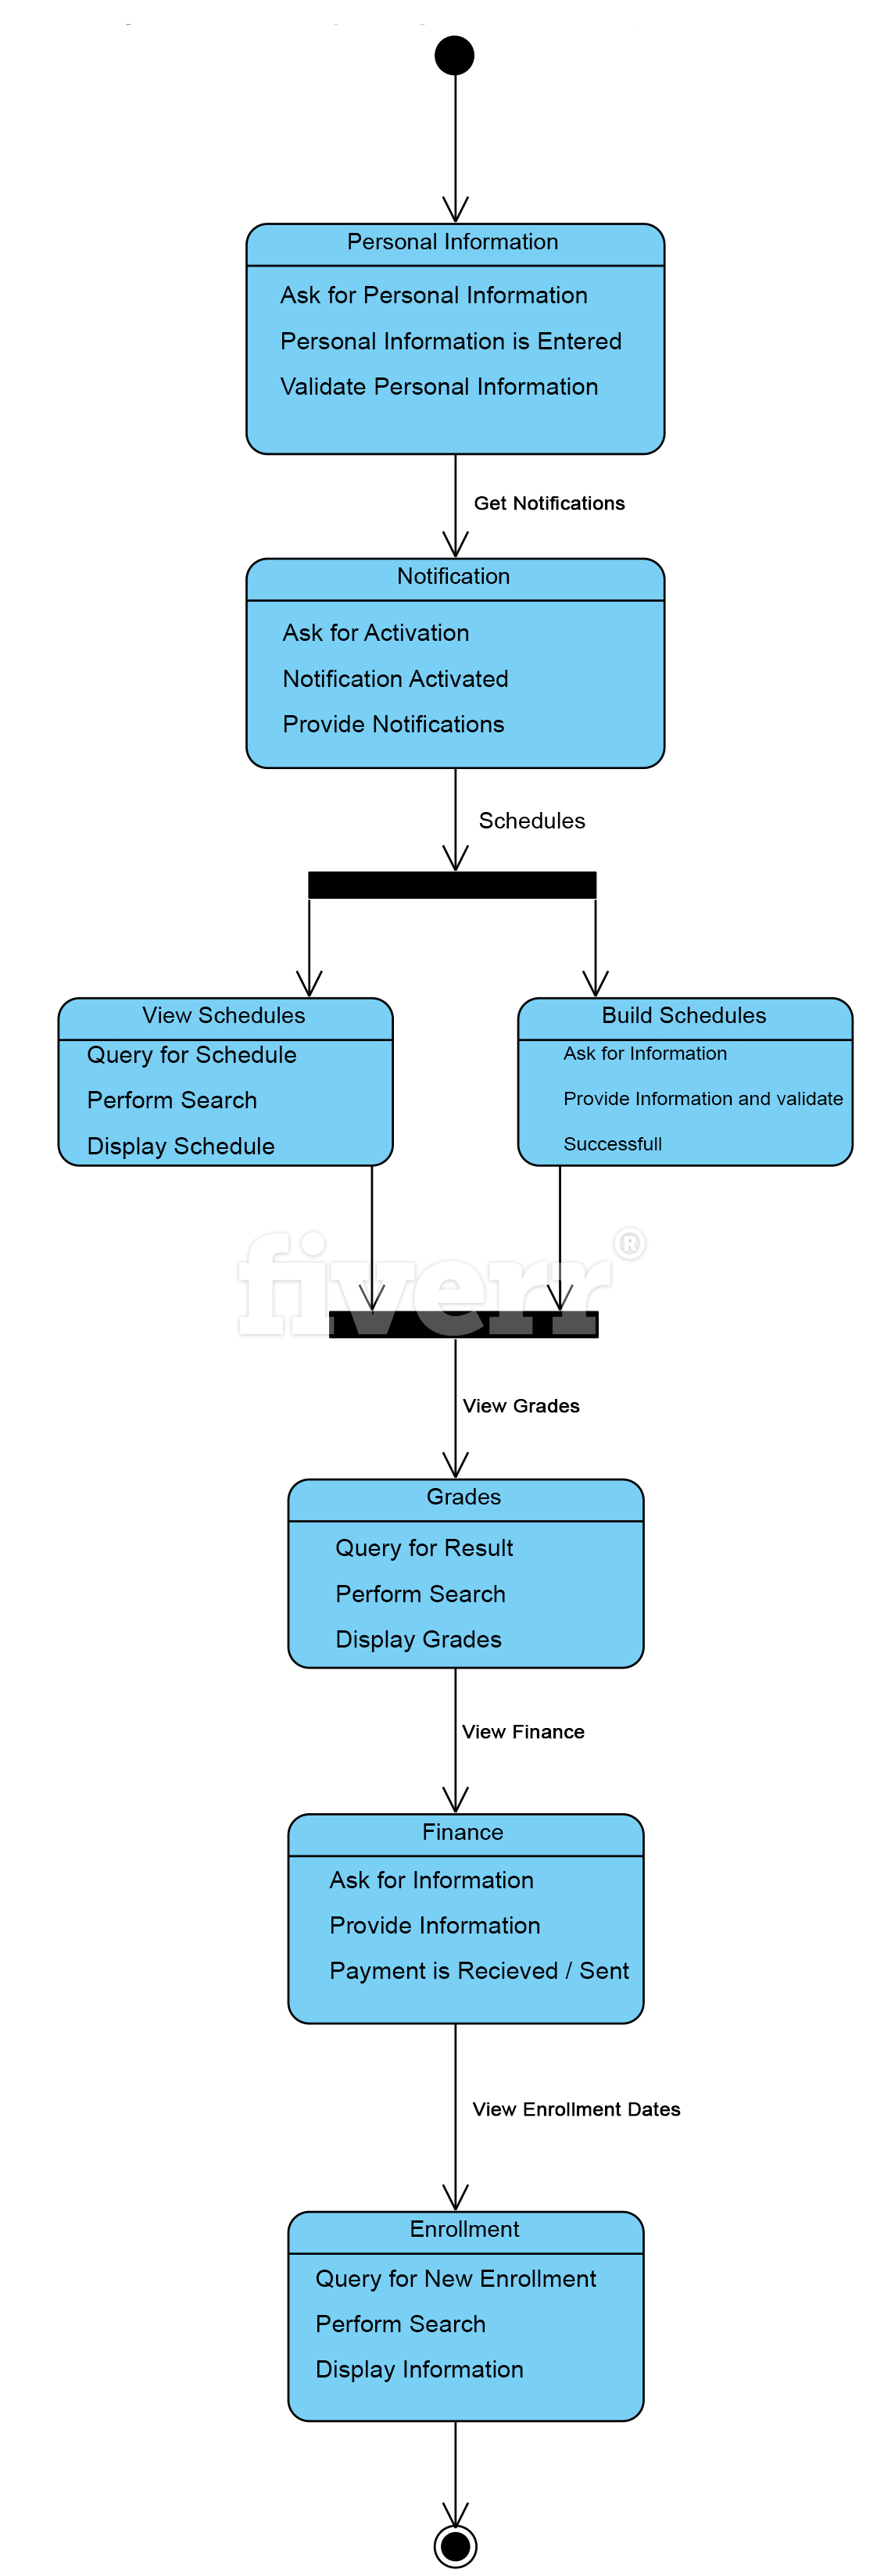 Draw erd uml sequence activity use case diagrams by Muhammadusman95